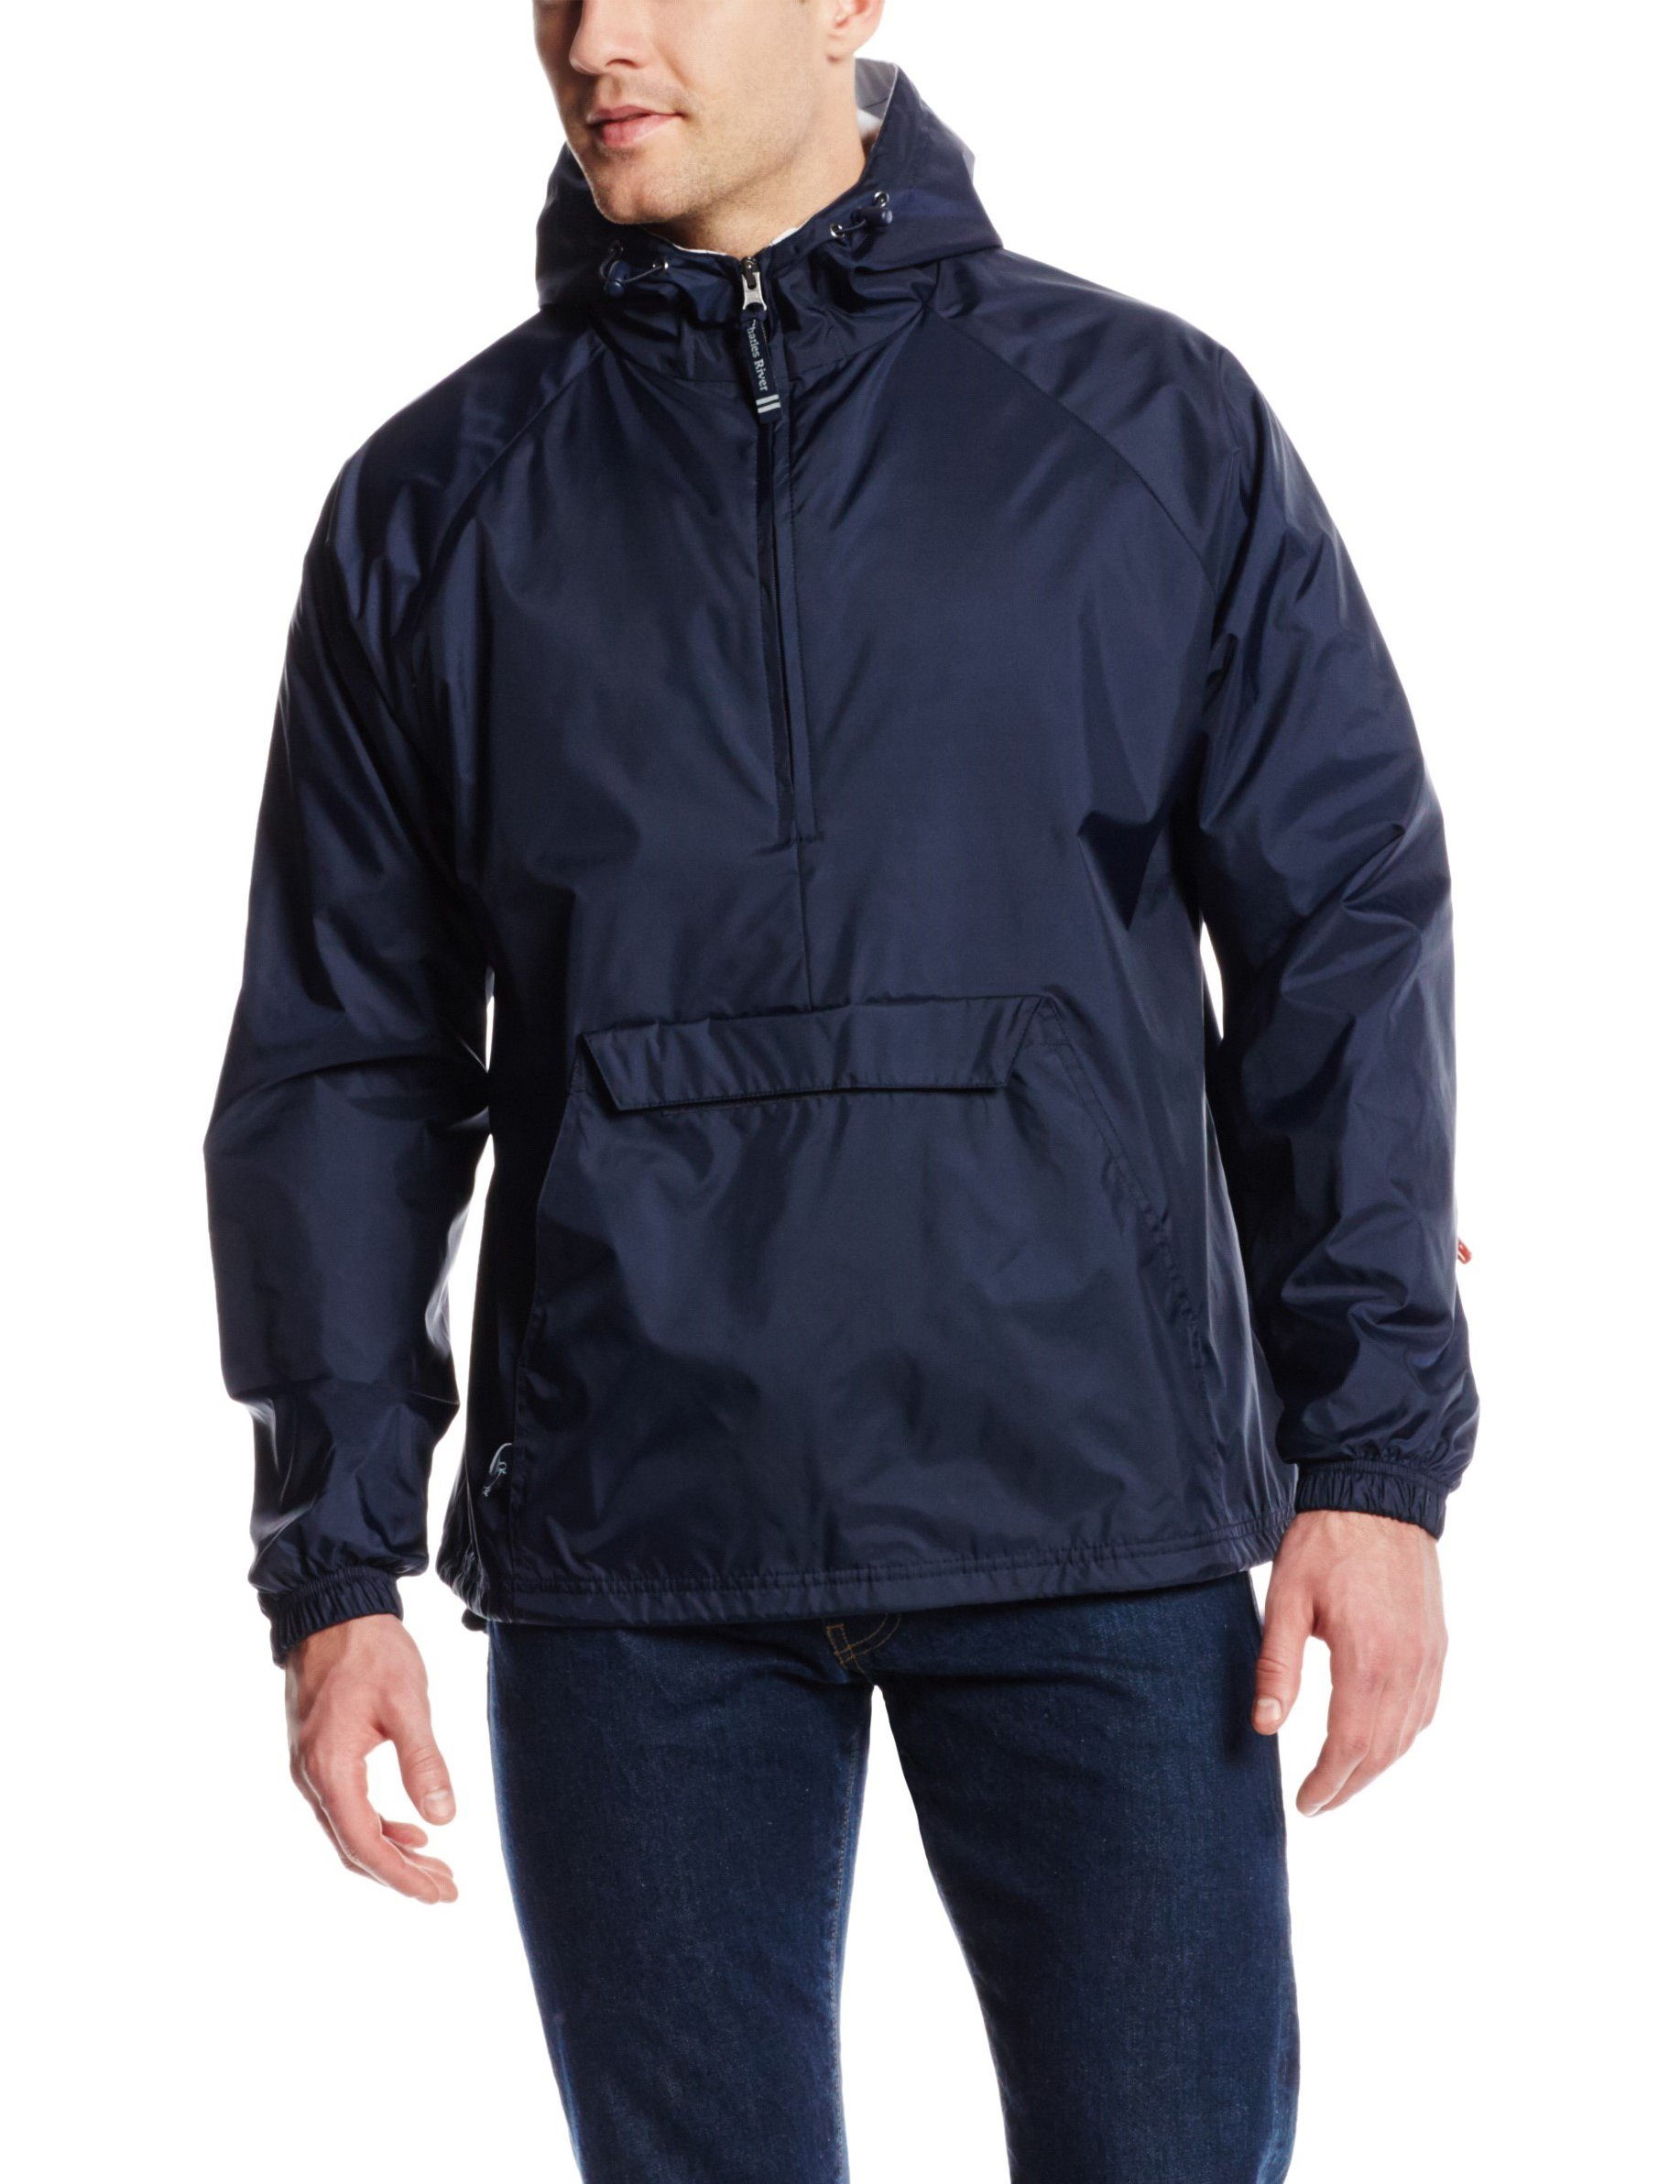 Charles River Apparel Men's Classic Solid Windbreaker Pullover, Navy, X-Large by Charles River Apparel